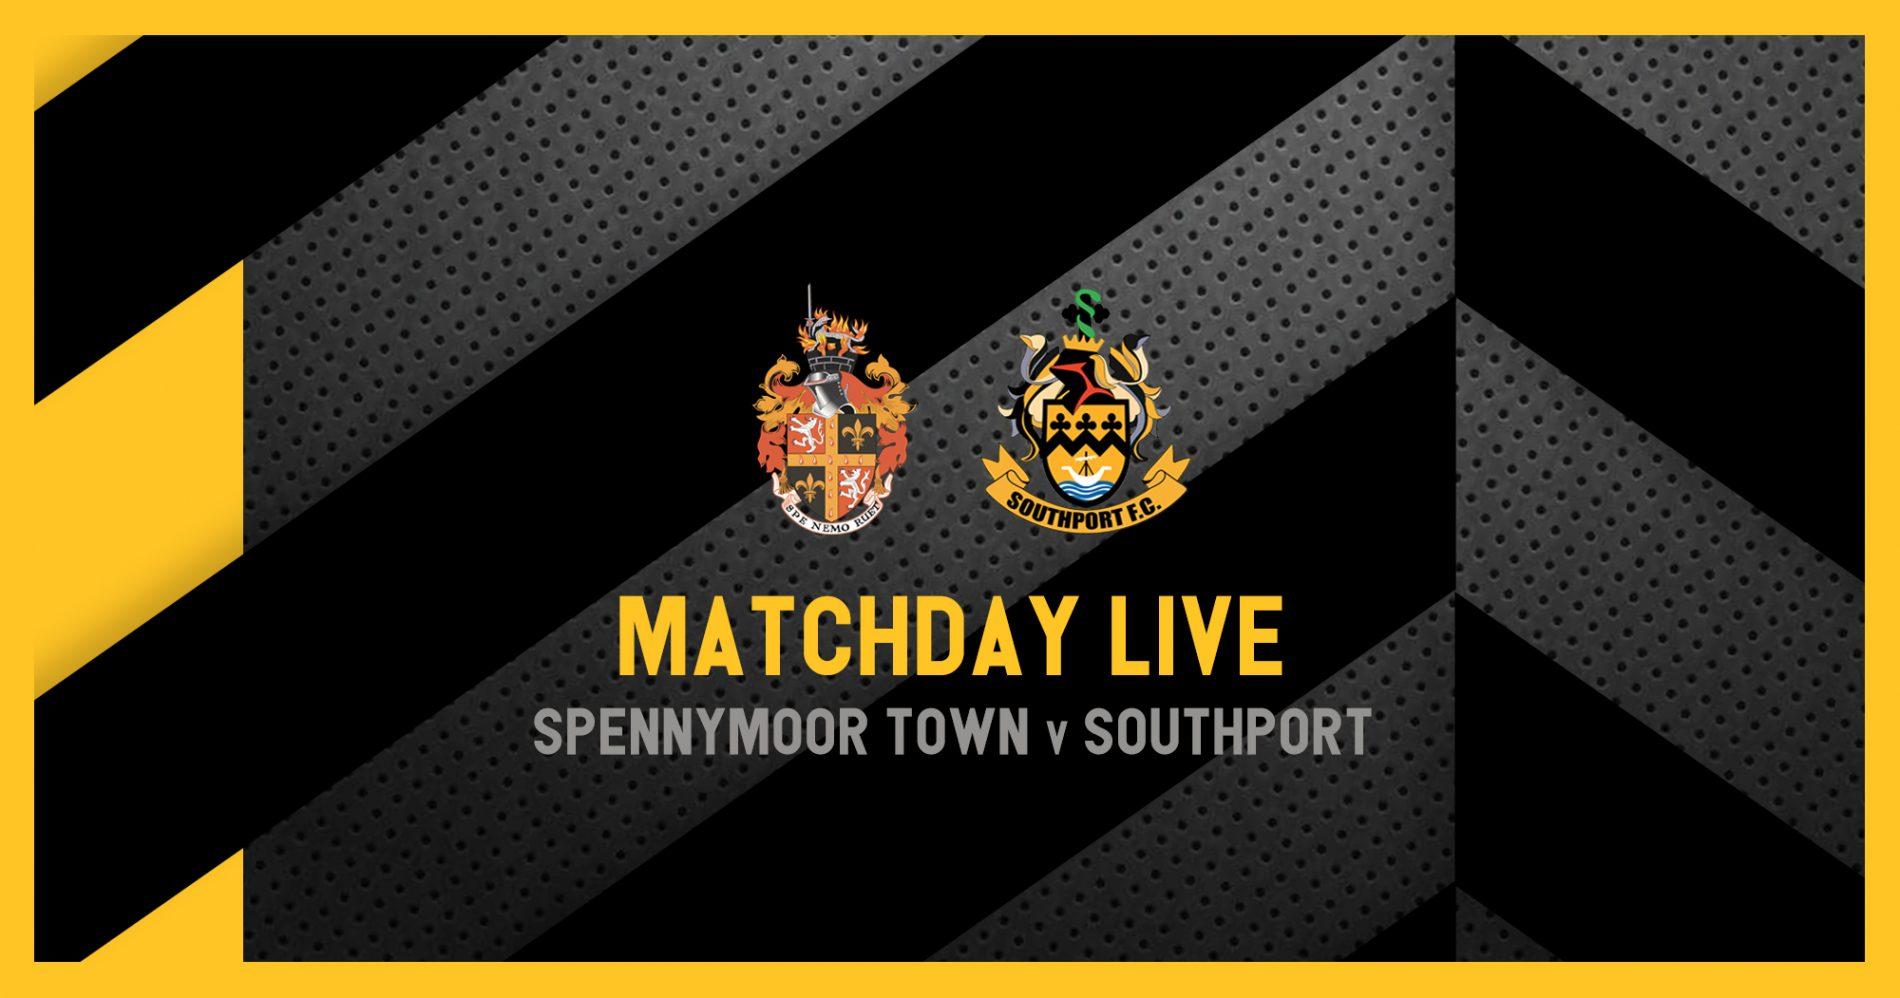 MATCHDAY LIVE | Spennymoor Town v Southport